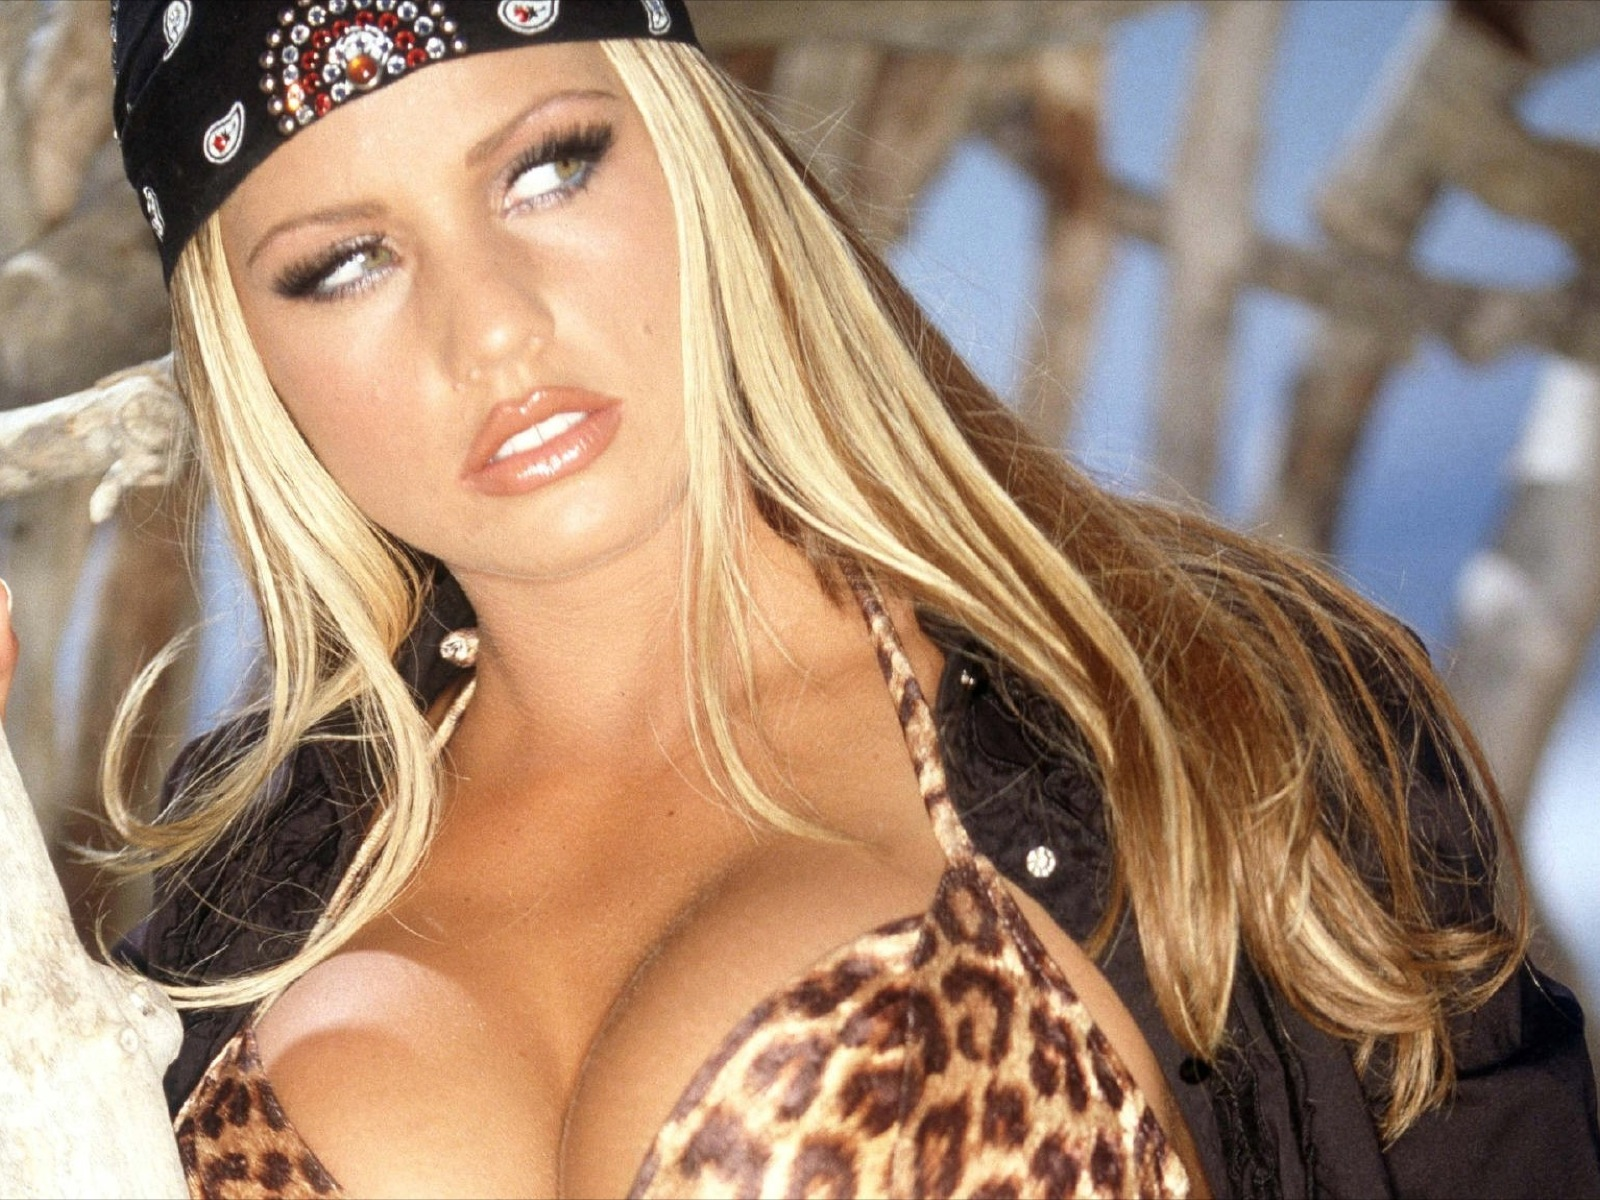 Katie_Price_0062_1600x1200_Wallpaper